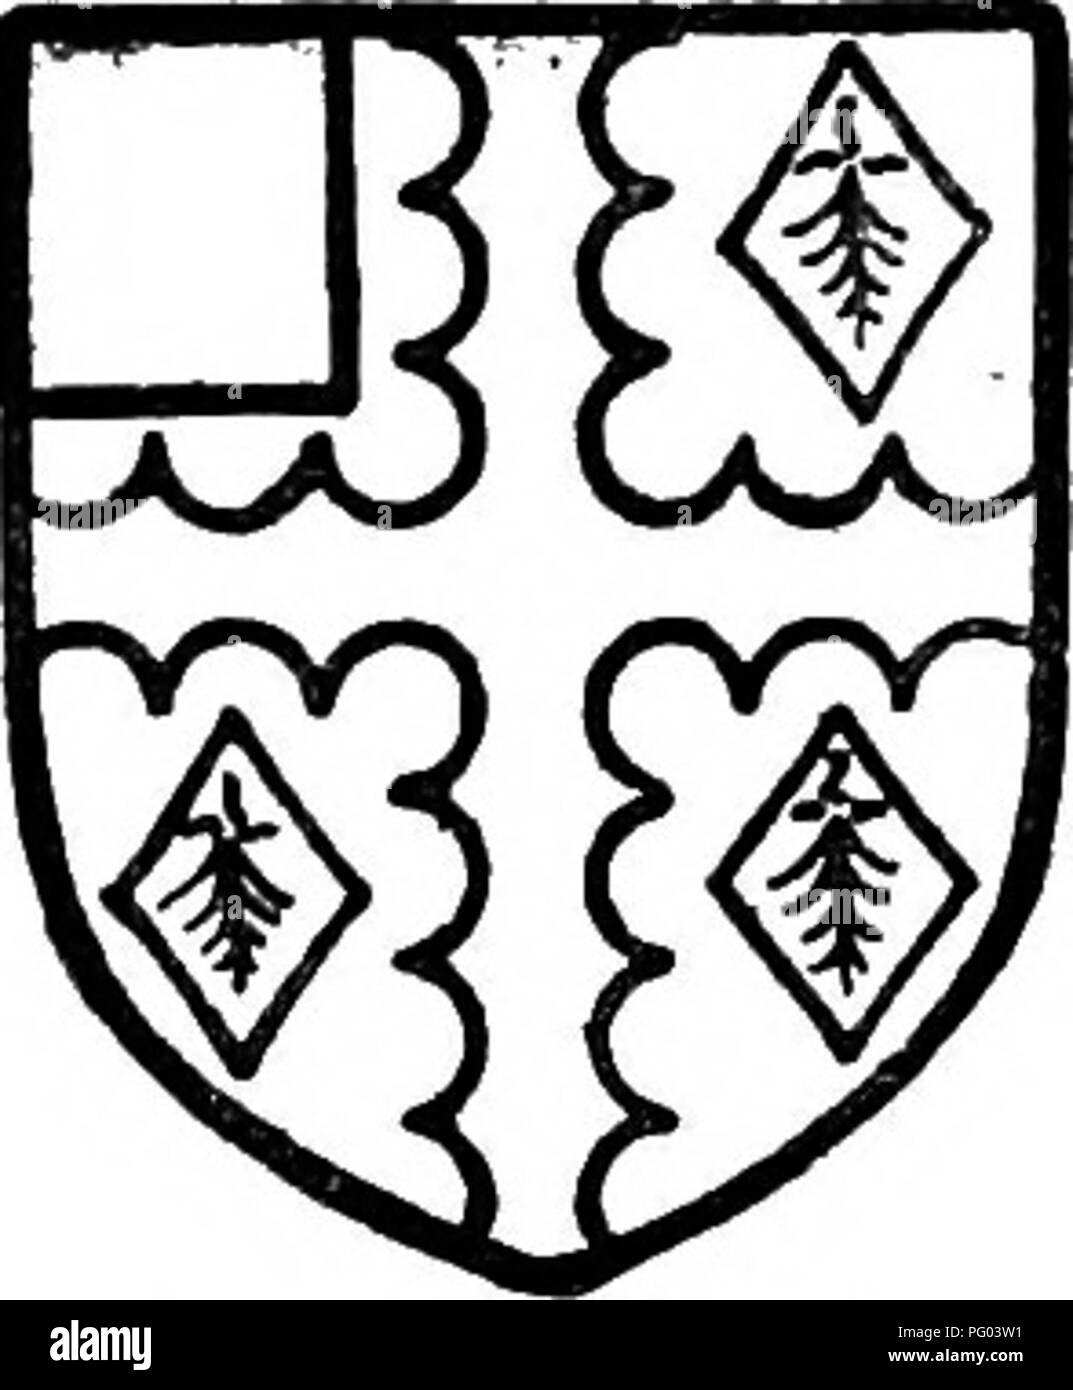 """. The Victoria history of the county of Lancaster;. Natural history. A HISTORY OF LANCASHIRE. Leigh, Gules a croa engrailed argent befween four lozenges ermine^ a canton or. descended like Orrell to Mr. Roger Leigh, of Hindley Hall, AspuU. The shares of the Billinge"""" and Winstanley*' families can- not be traced satisfactorily. One of the quarters of the manor was acquired by the family of Bankes of Winstan- ley.^' Thomas and John Winstan- ley and Thomas Bispham,"""" as landowners of Billinge and Winstanley, contributed to a subsidy levied about 1556. The freeholders in 1600 were : Ander - Stock Image"""